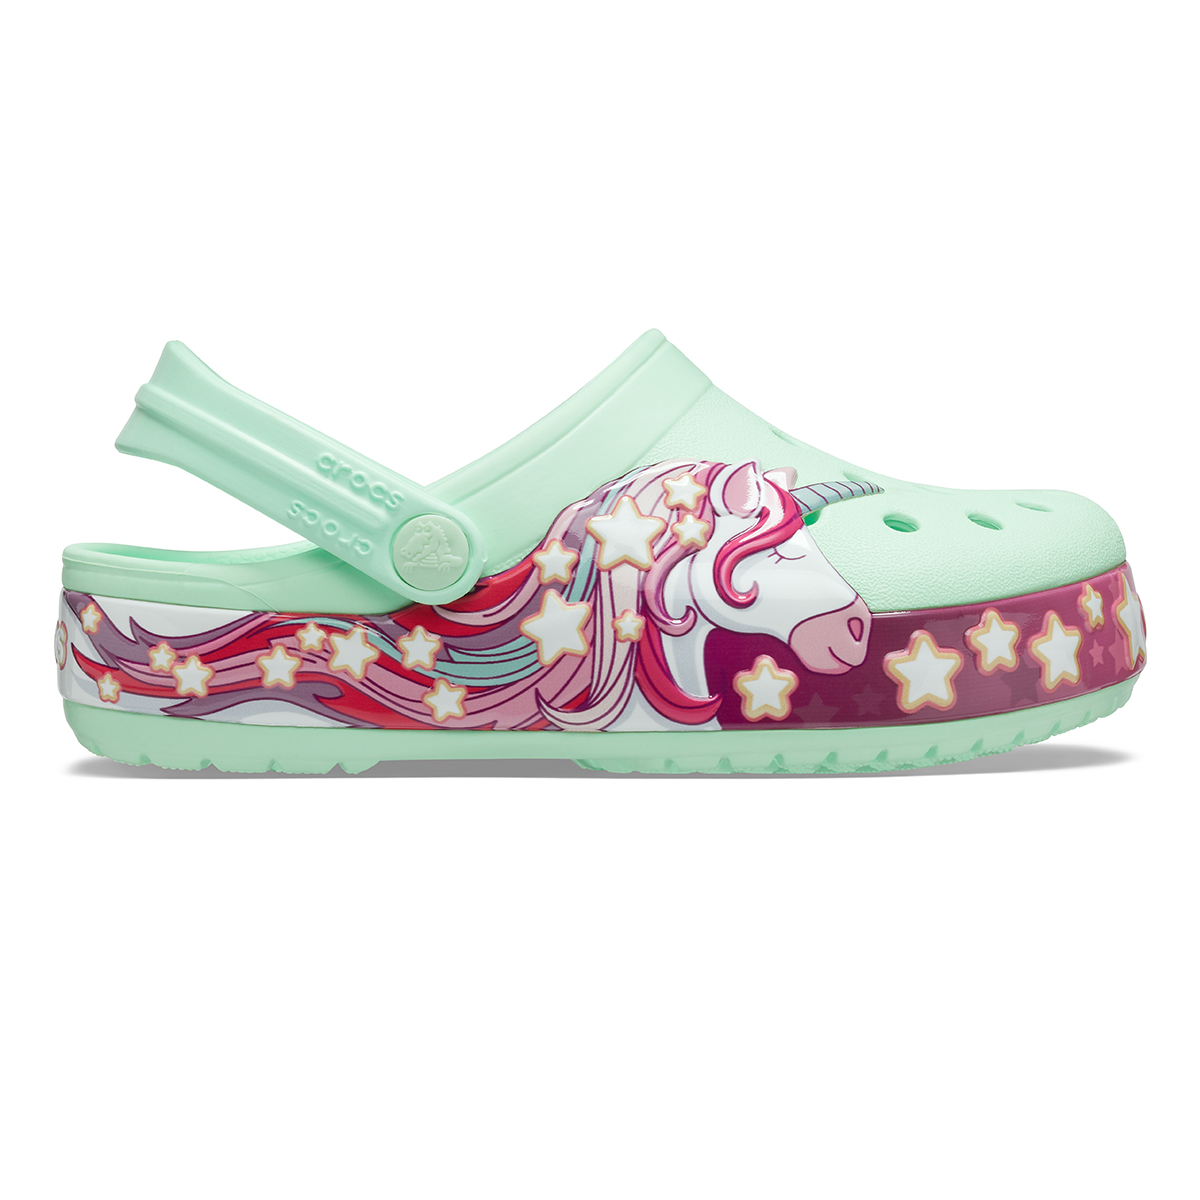 Crocs FunLab Unicorn Band Cg K -Mint